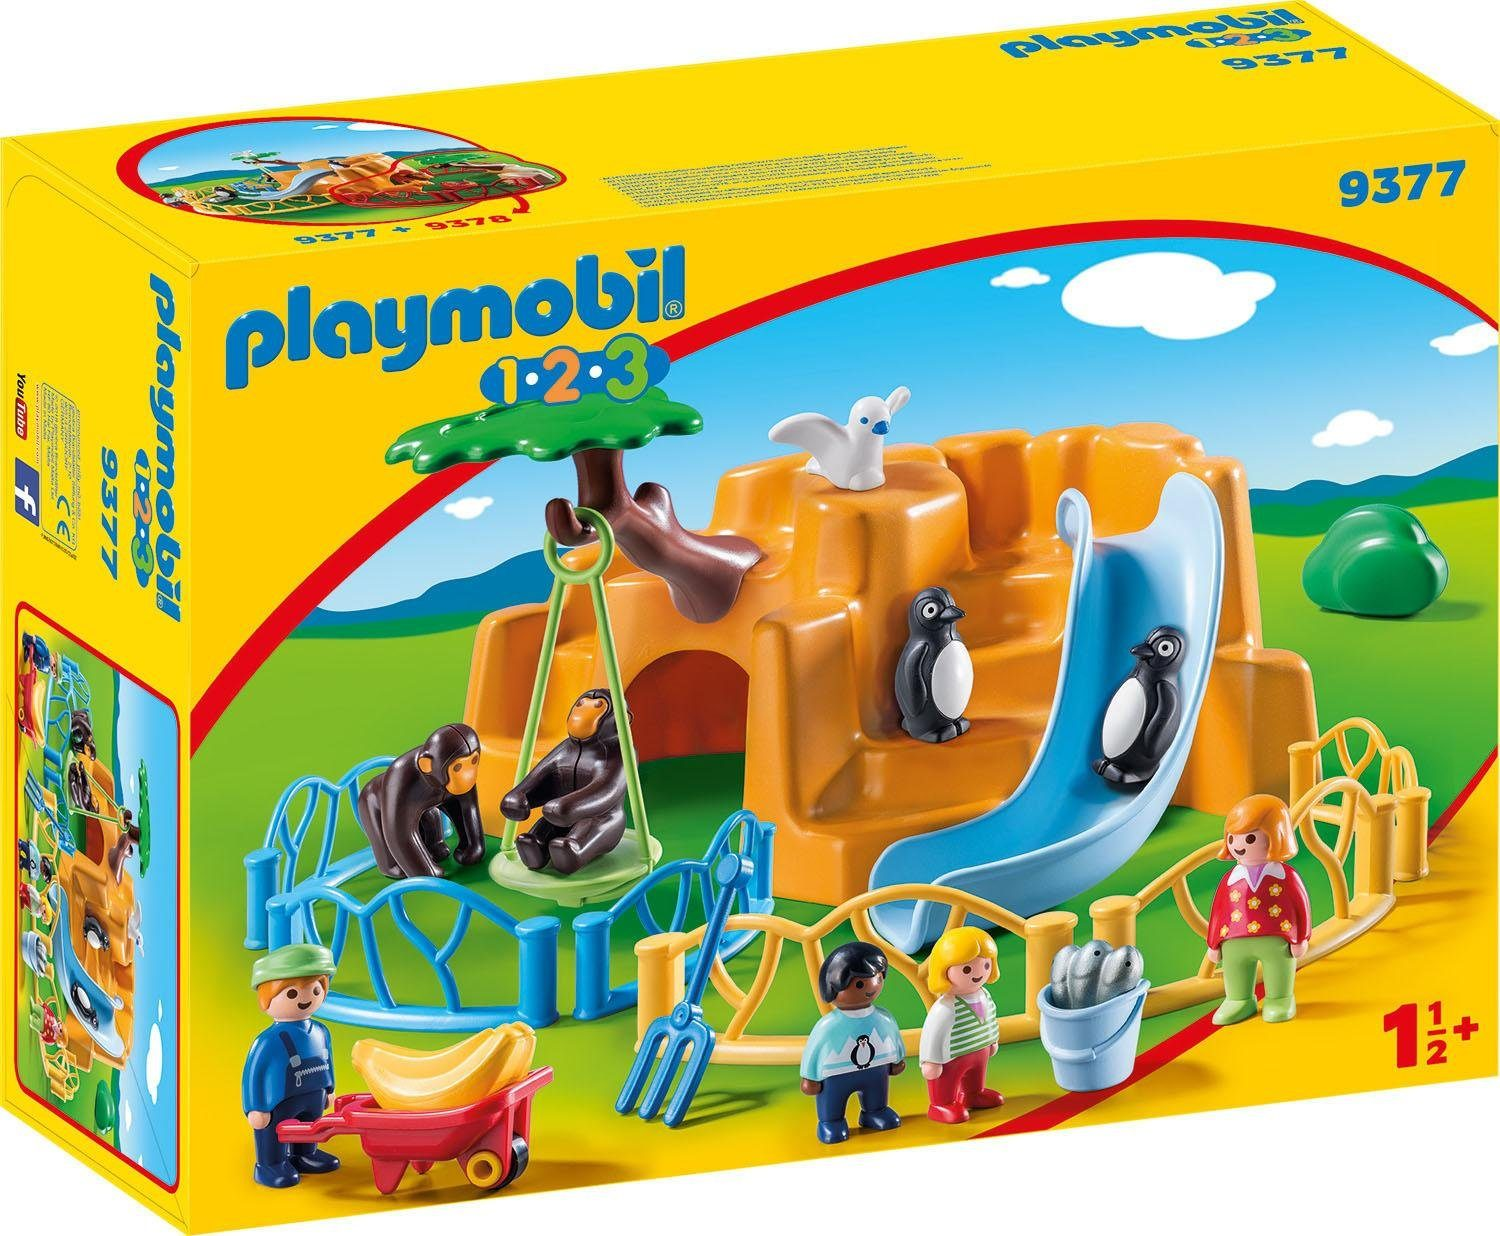 Playmobil® Zoo (9377), »Playmobil 1-2-3«